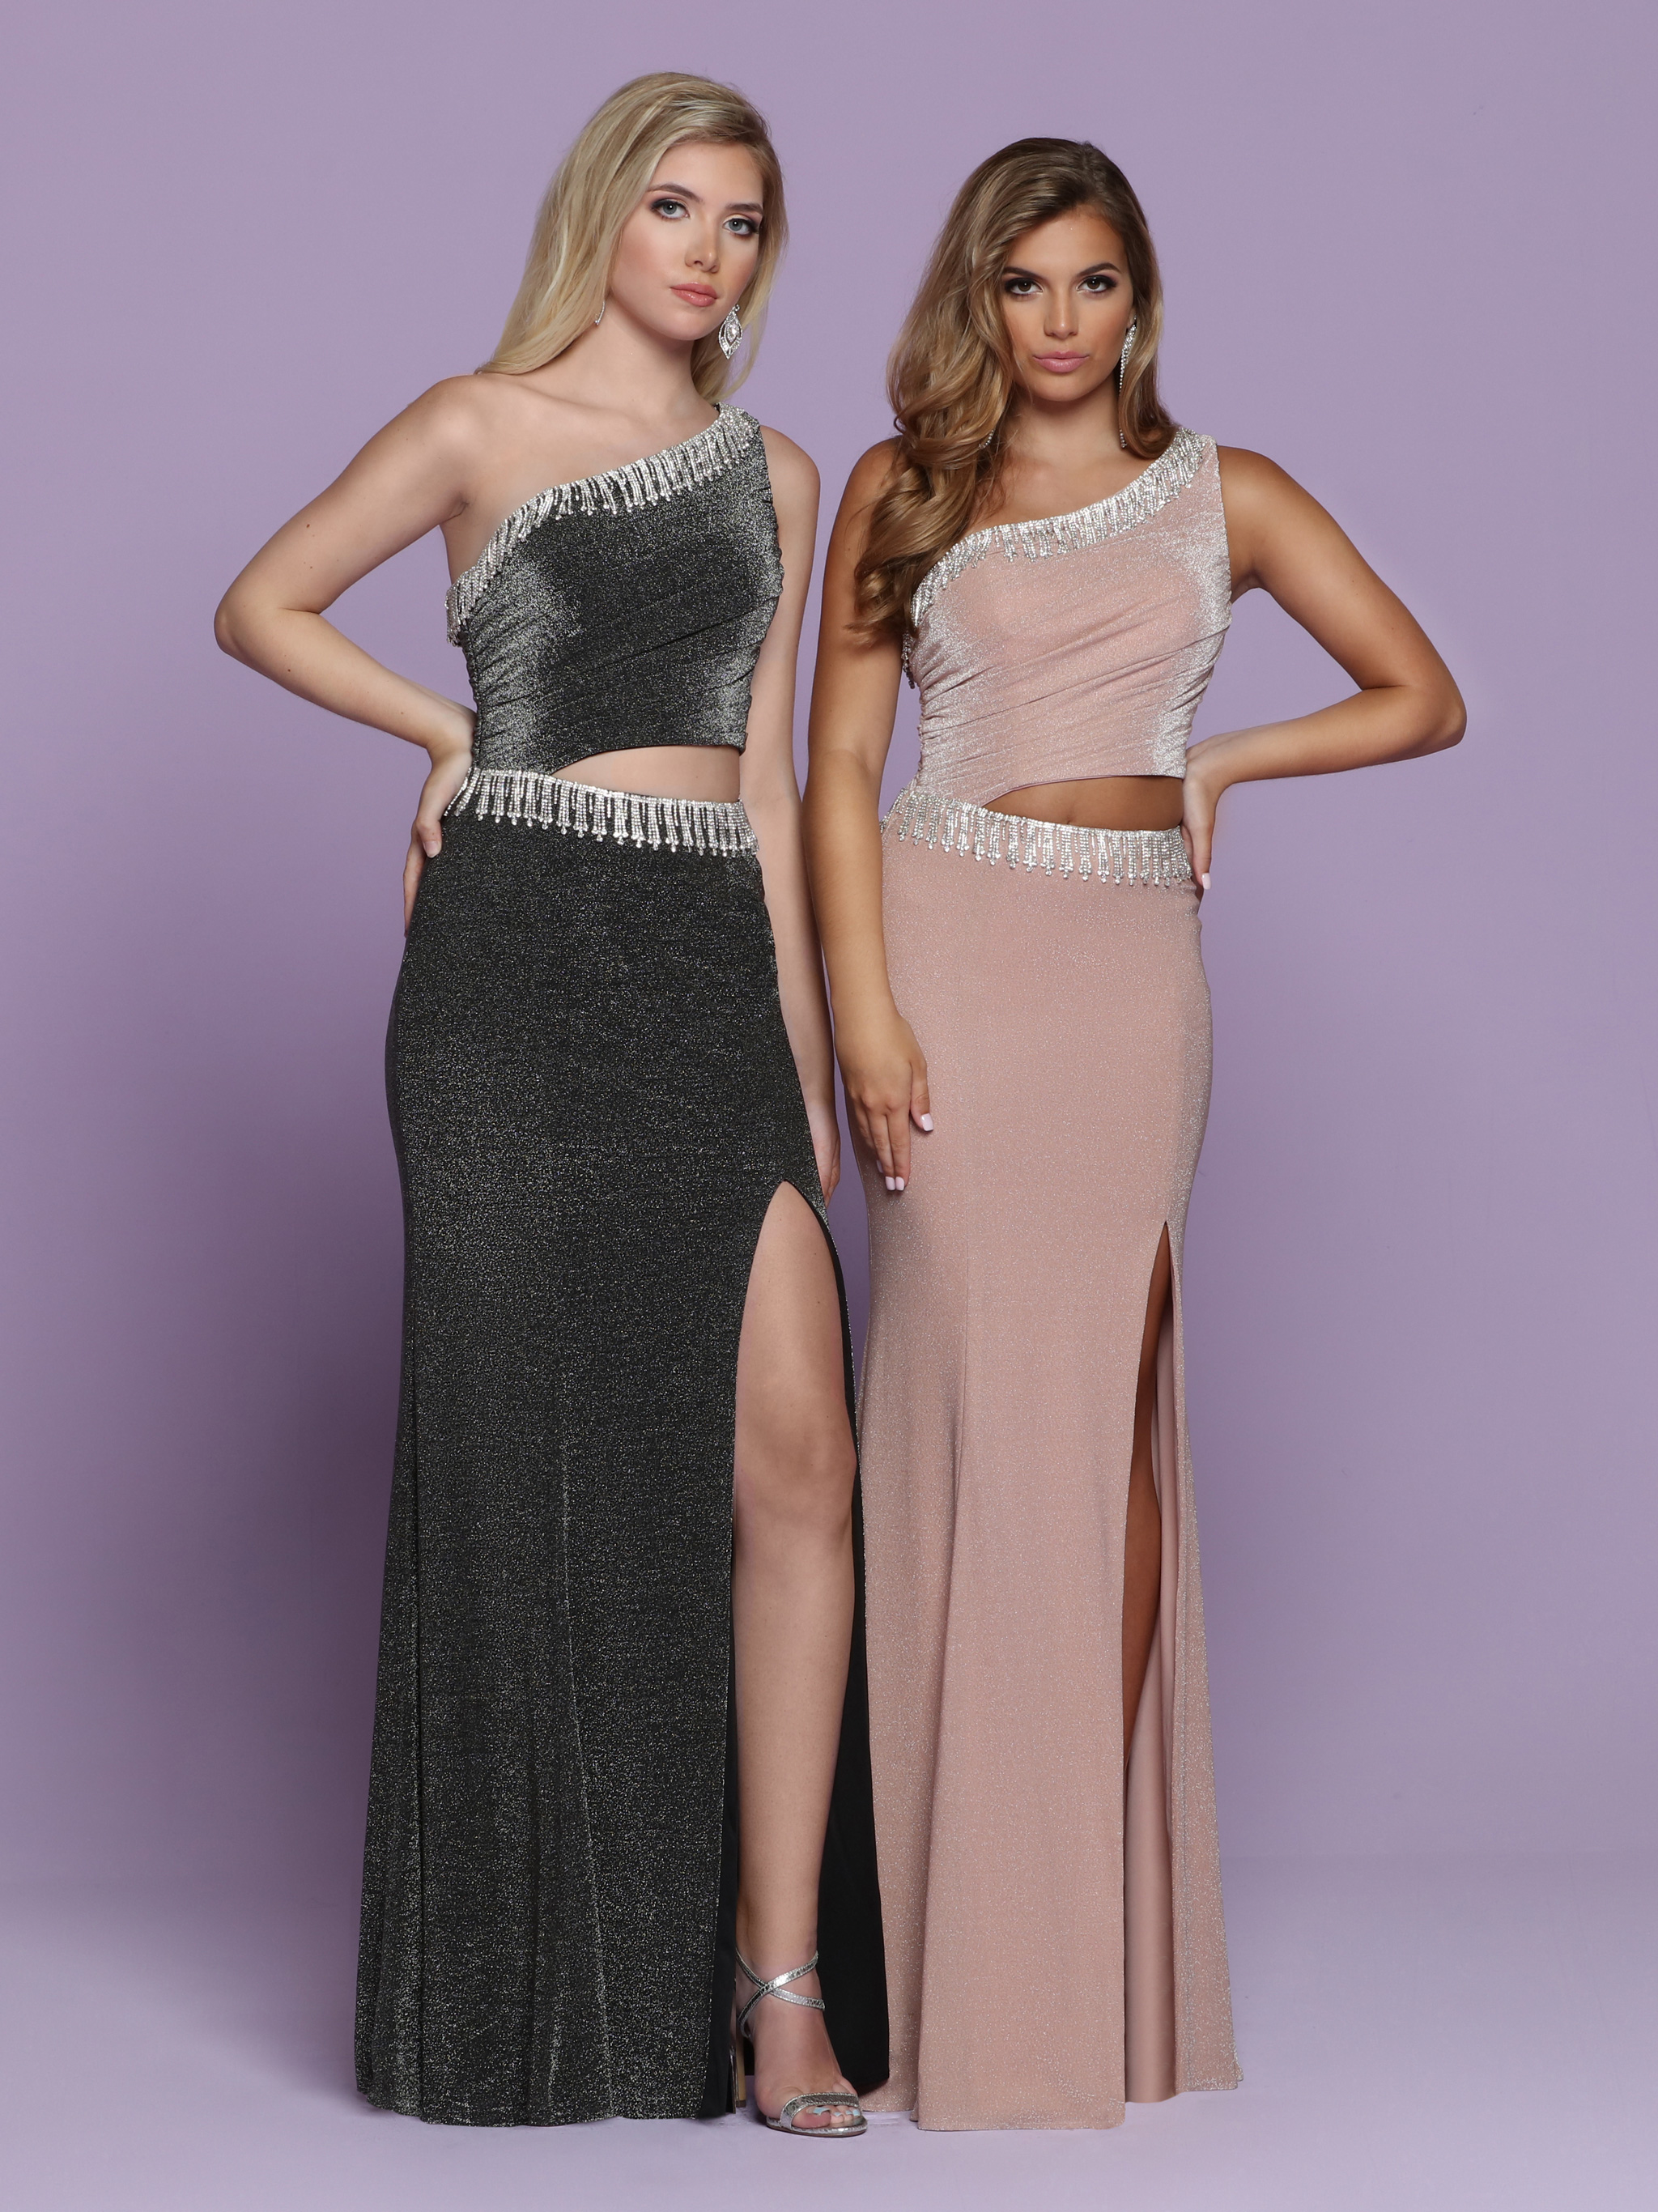 Slit Skirt Prom Dresses for 2020 – Sparkle Prom